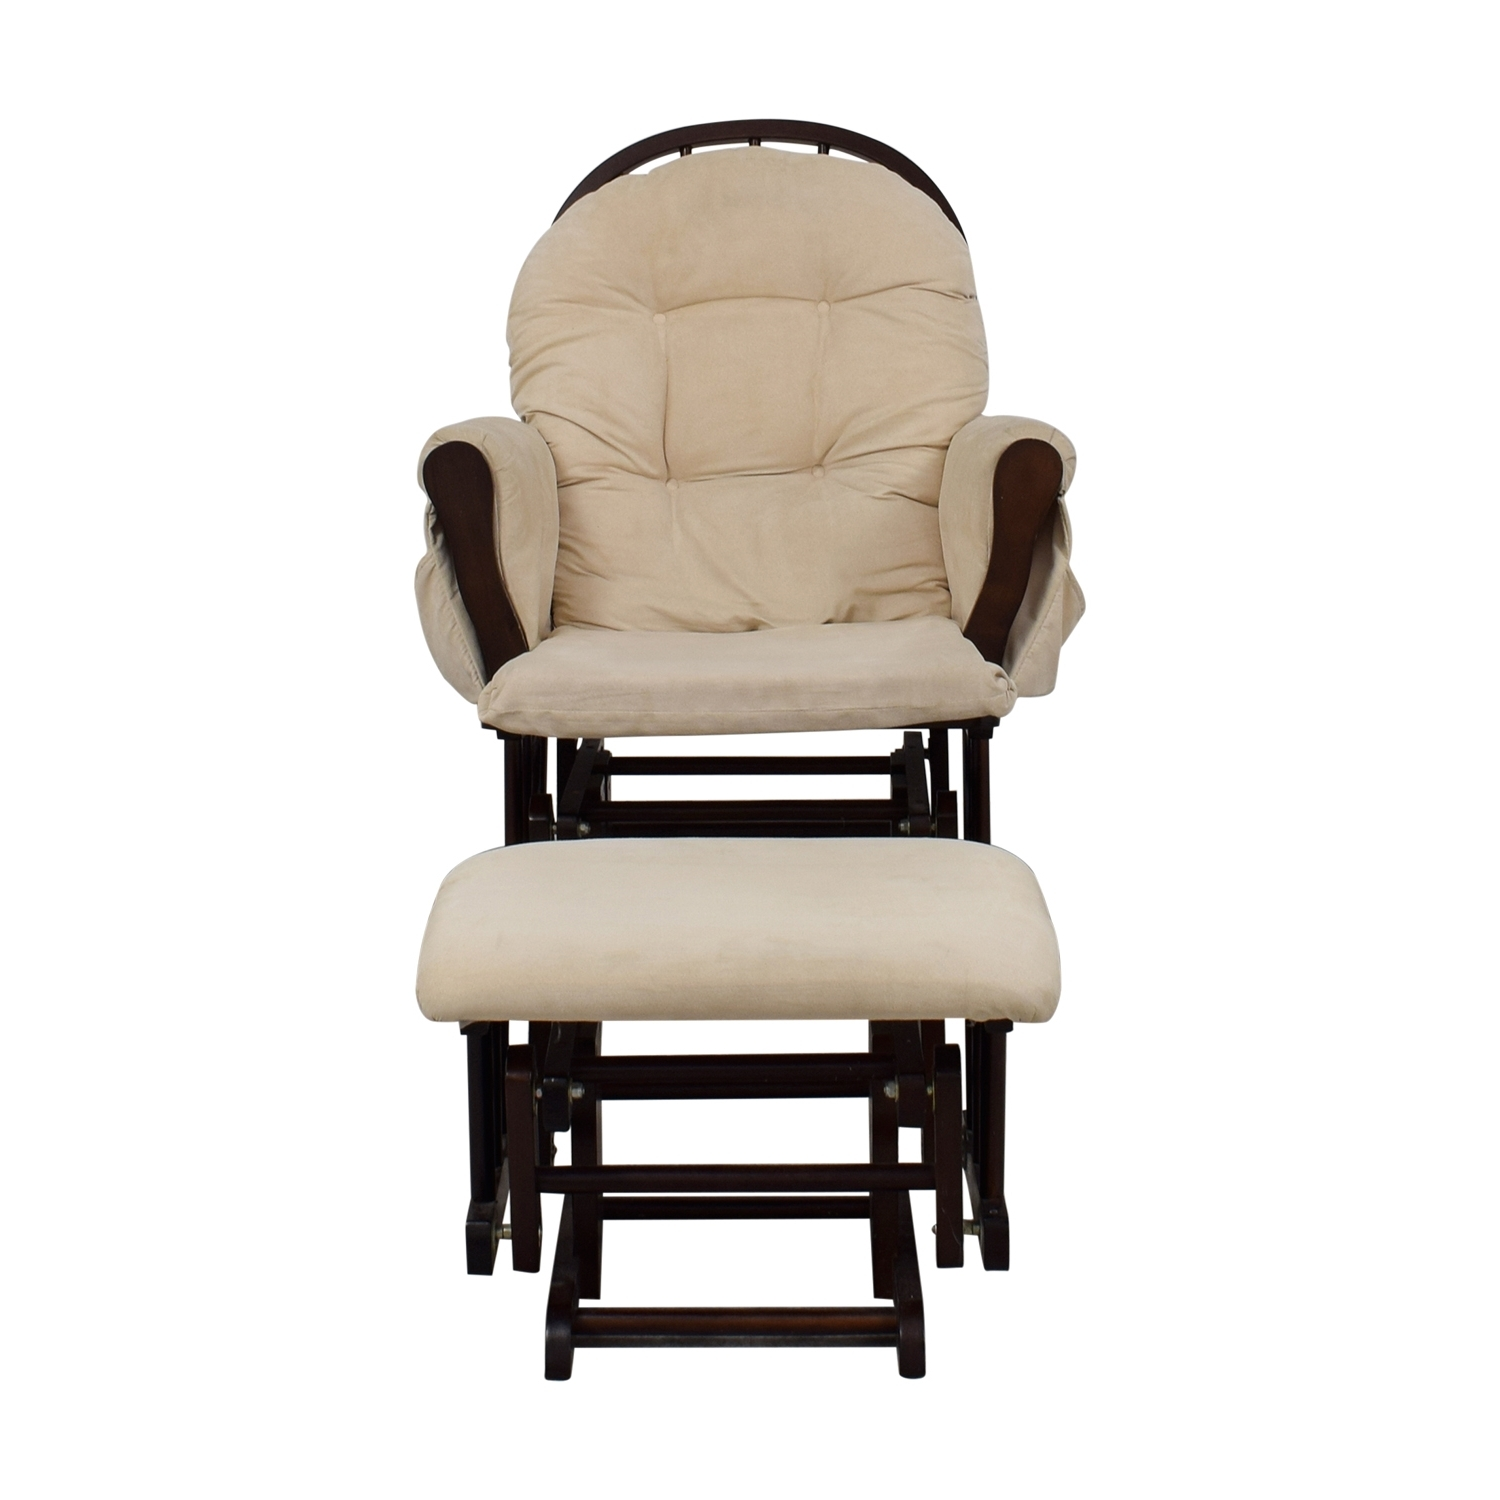 [%44% Off – Beige And Wood Rocking Chair With Ottoman / Chairs Pertaining To Well Known Rocking Chairs With Ottoman|Rocking Chairs With Ottoman For Most Current 44% Off – Beige And Wood Rocking Chair With Ottoman / Chairs|Most Recently Released Rocking Chairs With Ottoman Pertaining To 44% Off – Beige And Wood Rocking Chair With Ottoman / Chairs|Most Current 44% Off – Beige And Wood Rocking Chair With Ottoman / Chairs Pertaining To Rocking Chairs With Ottoman%] (View 1 of 20)